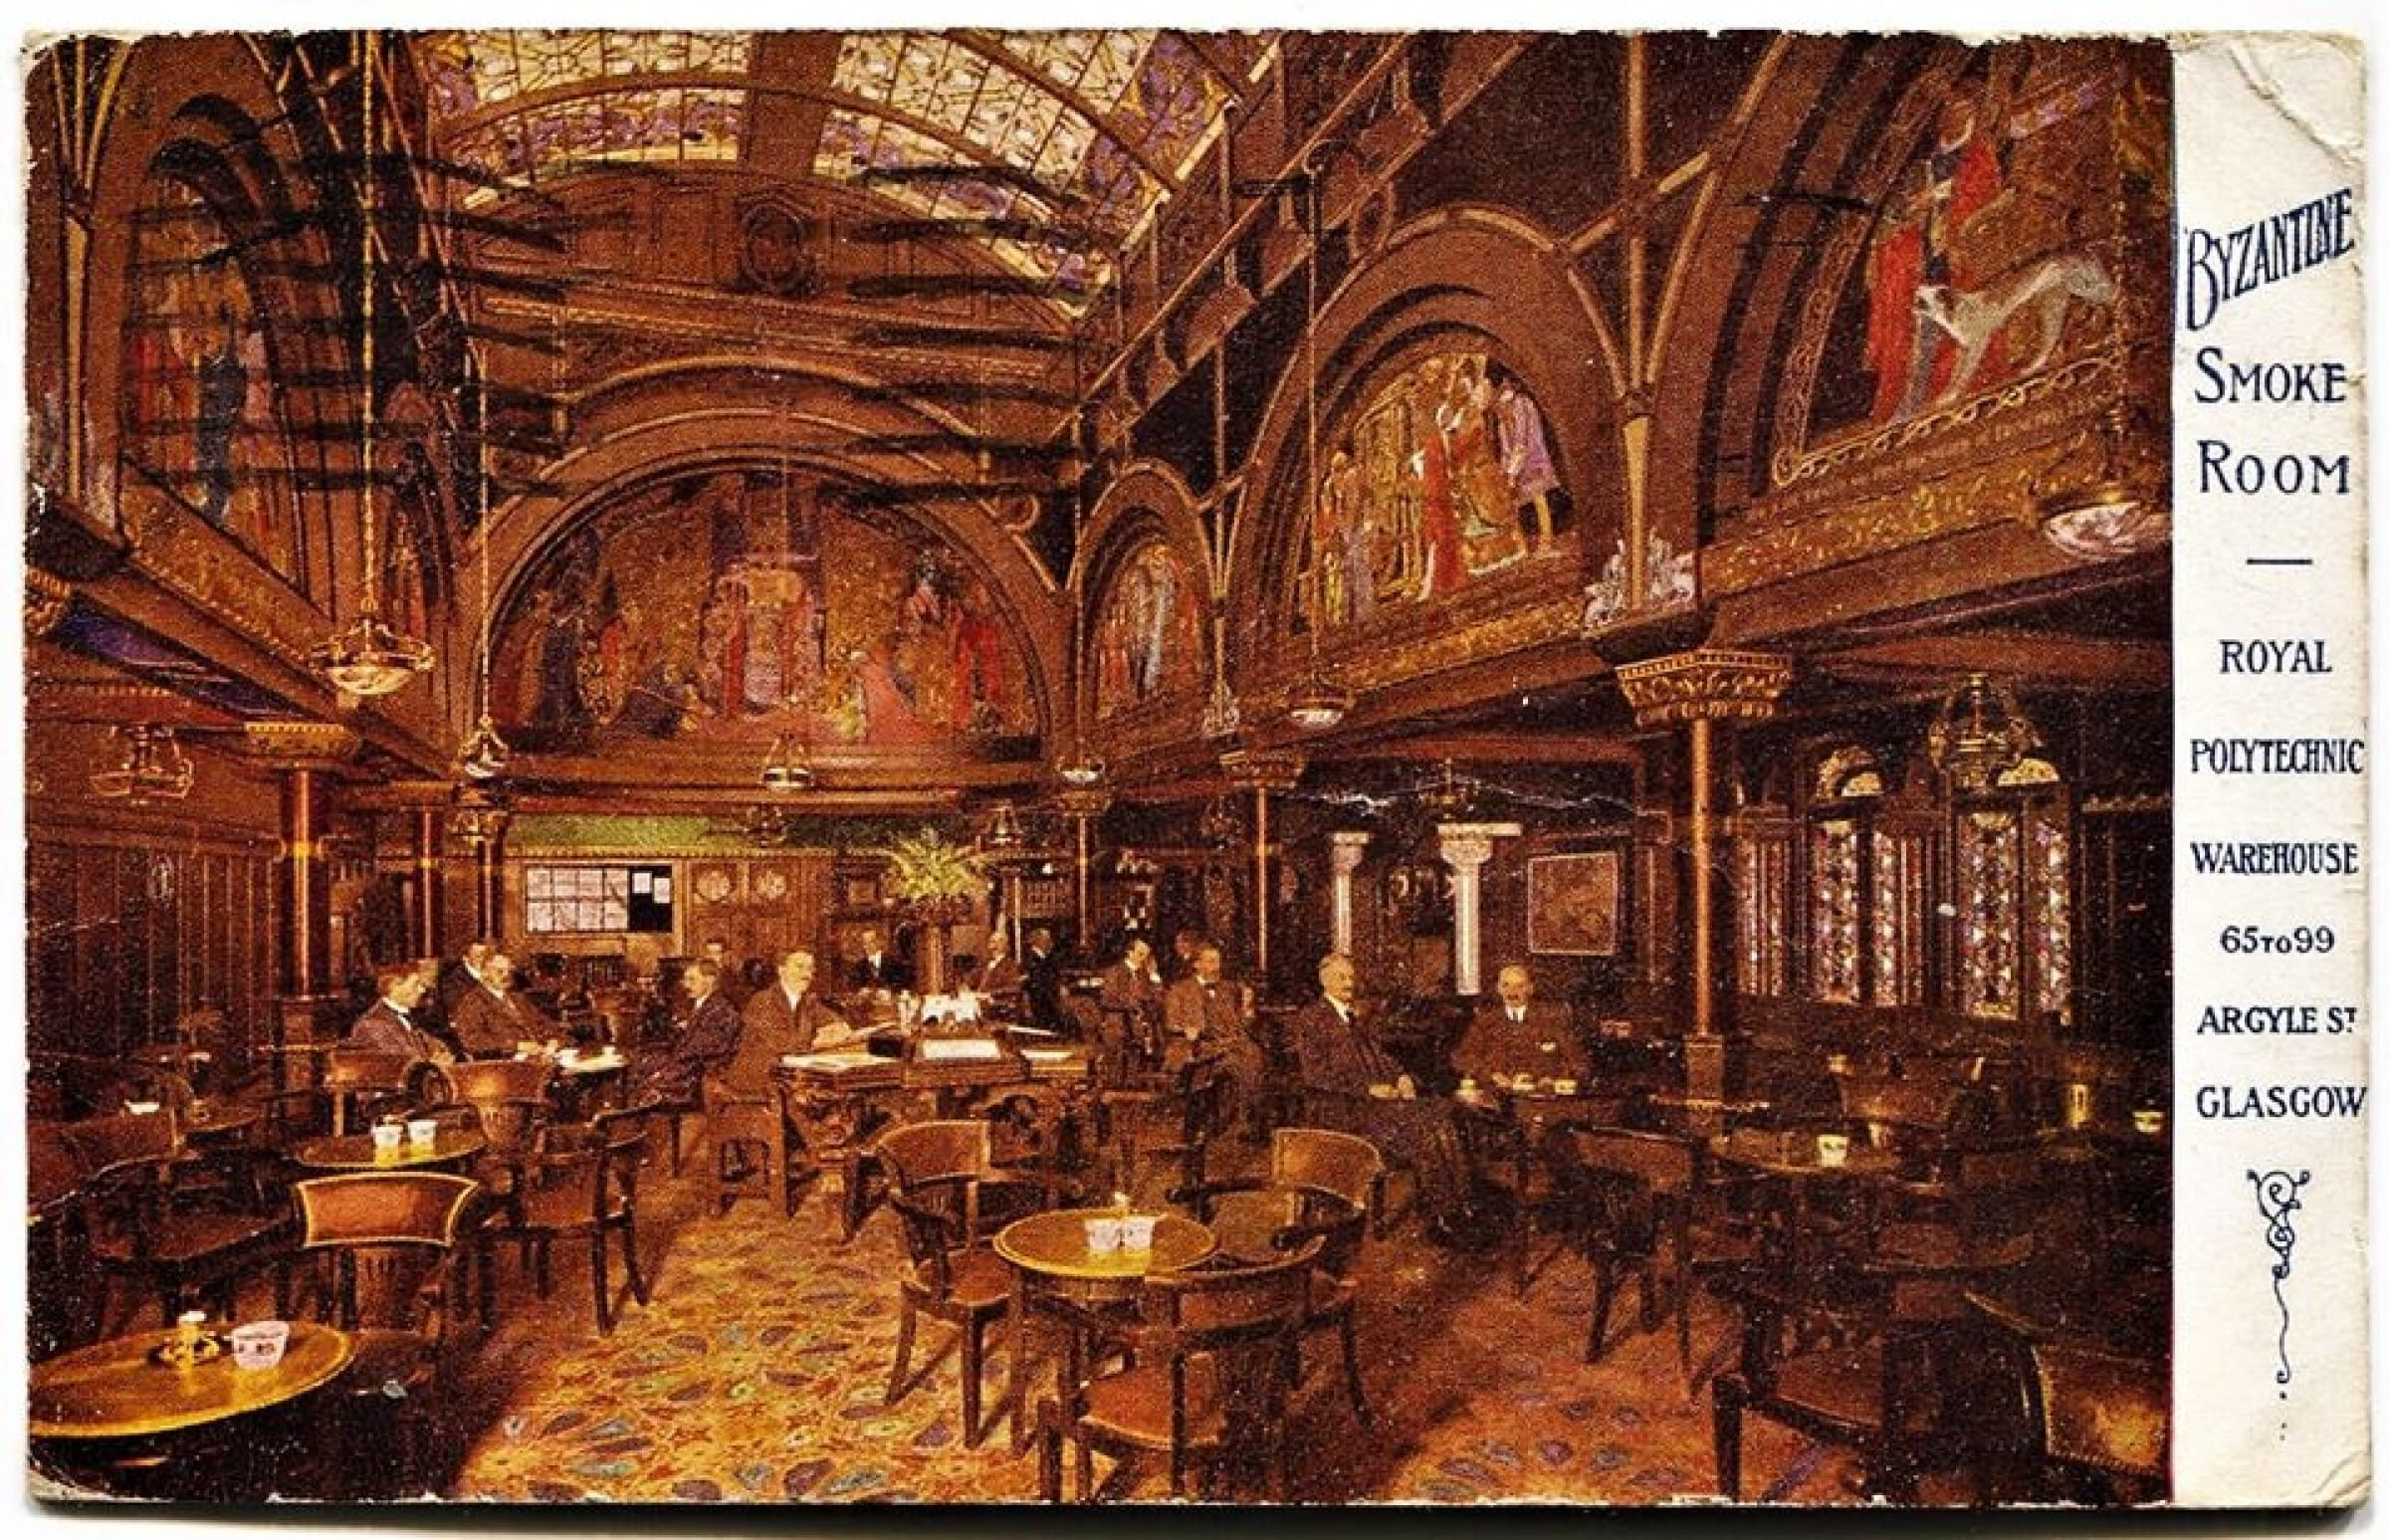 Time for a classy cuppa (The Byzantine Smoking Room of John Anderson's Royal Polytechnic Warehouse (Postcard))